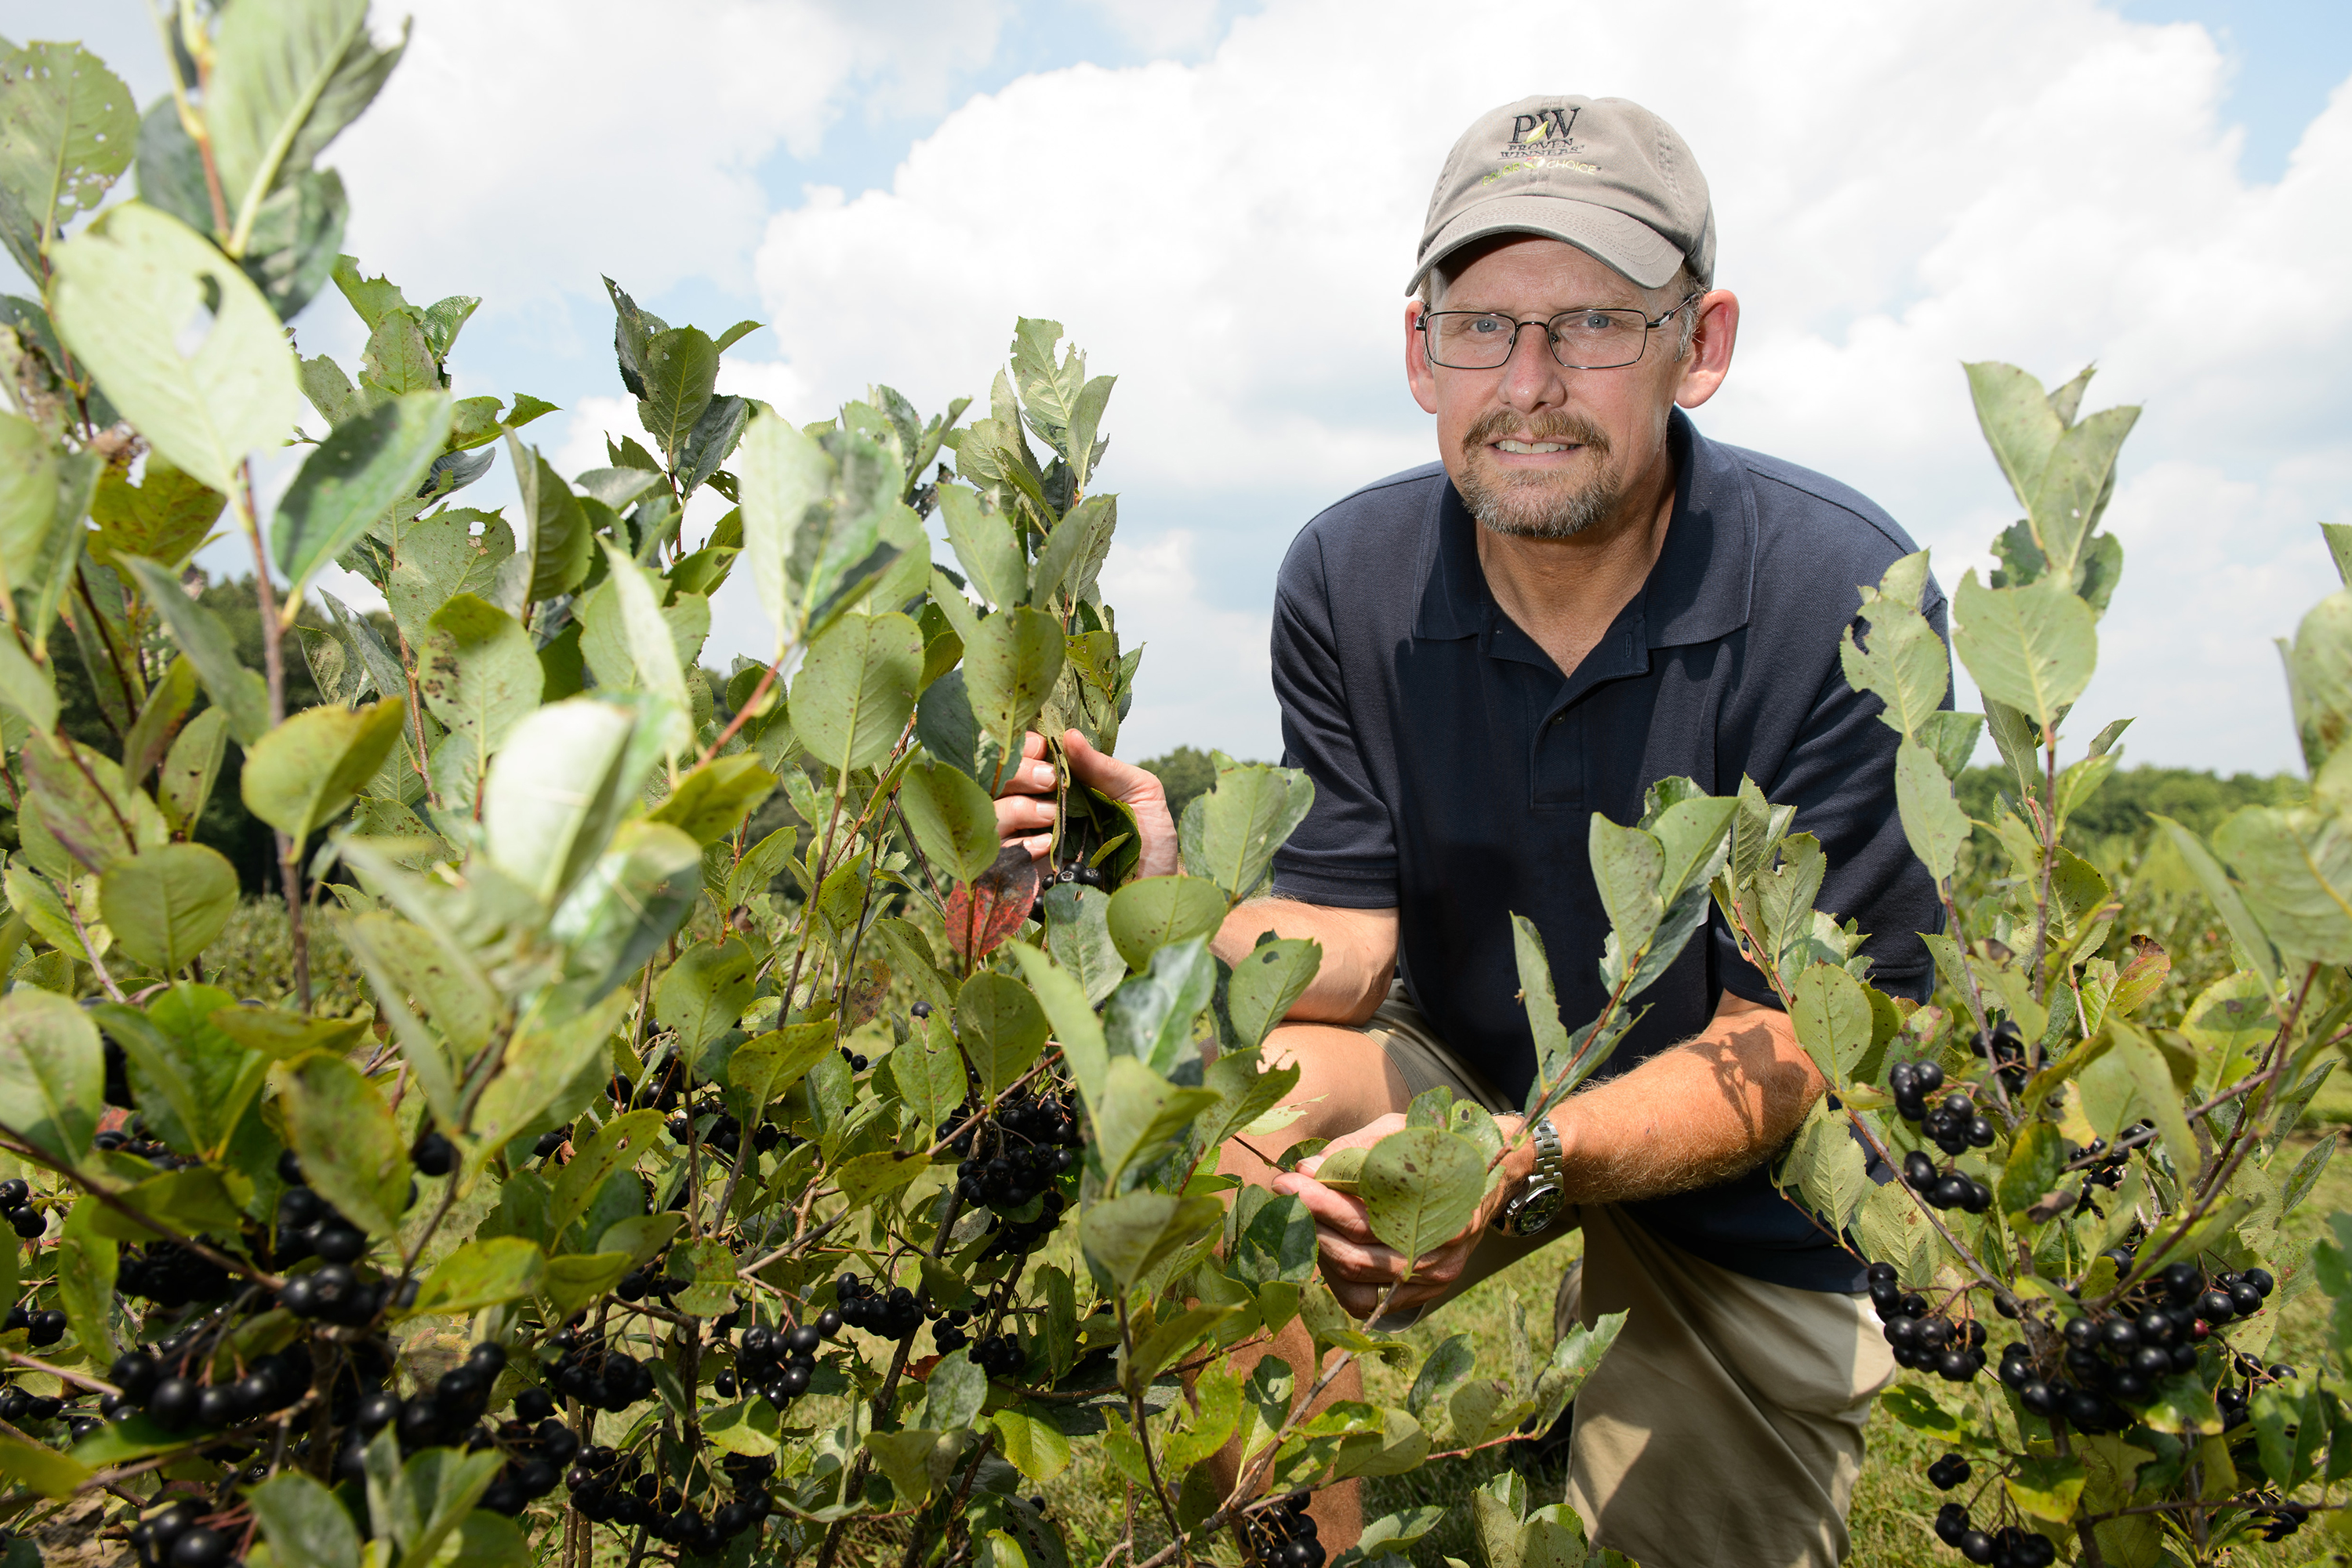 Mark Brand, professor of plant science and landscape architecture, with Aaonia berries growing at the Plant Science Research Farm on Aug. 9, 2012. (Peter Morenus/UConn Photo)